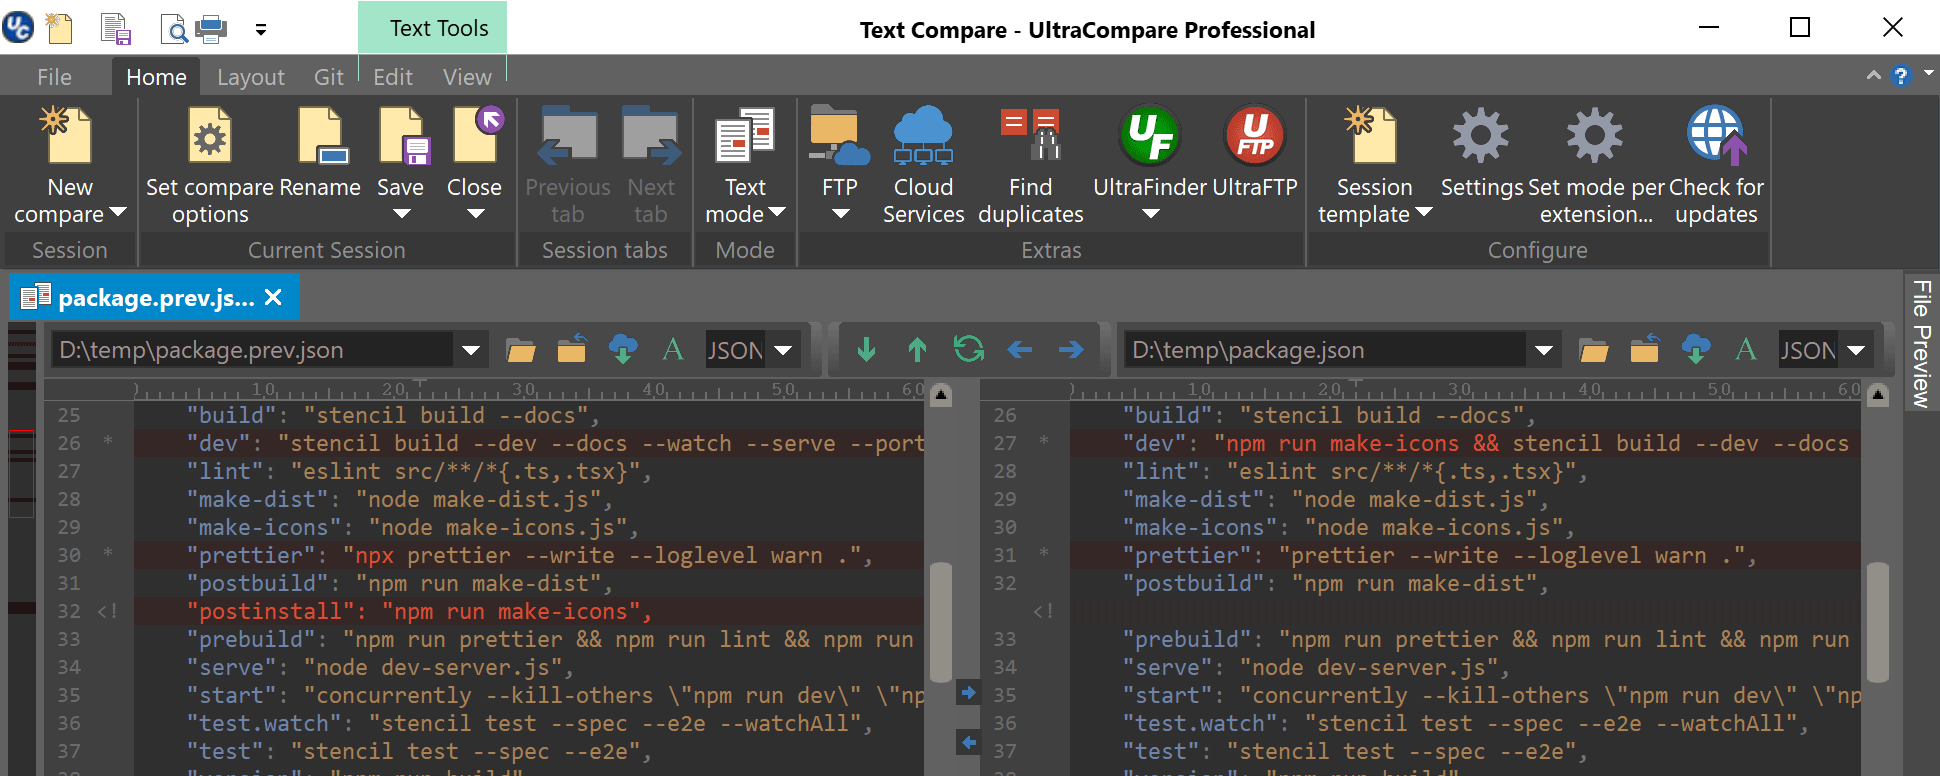 screenshot of compare feature in UltraEdit